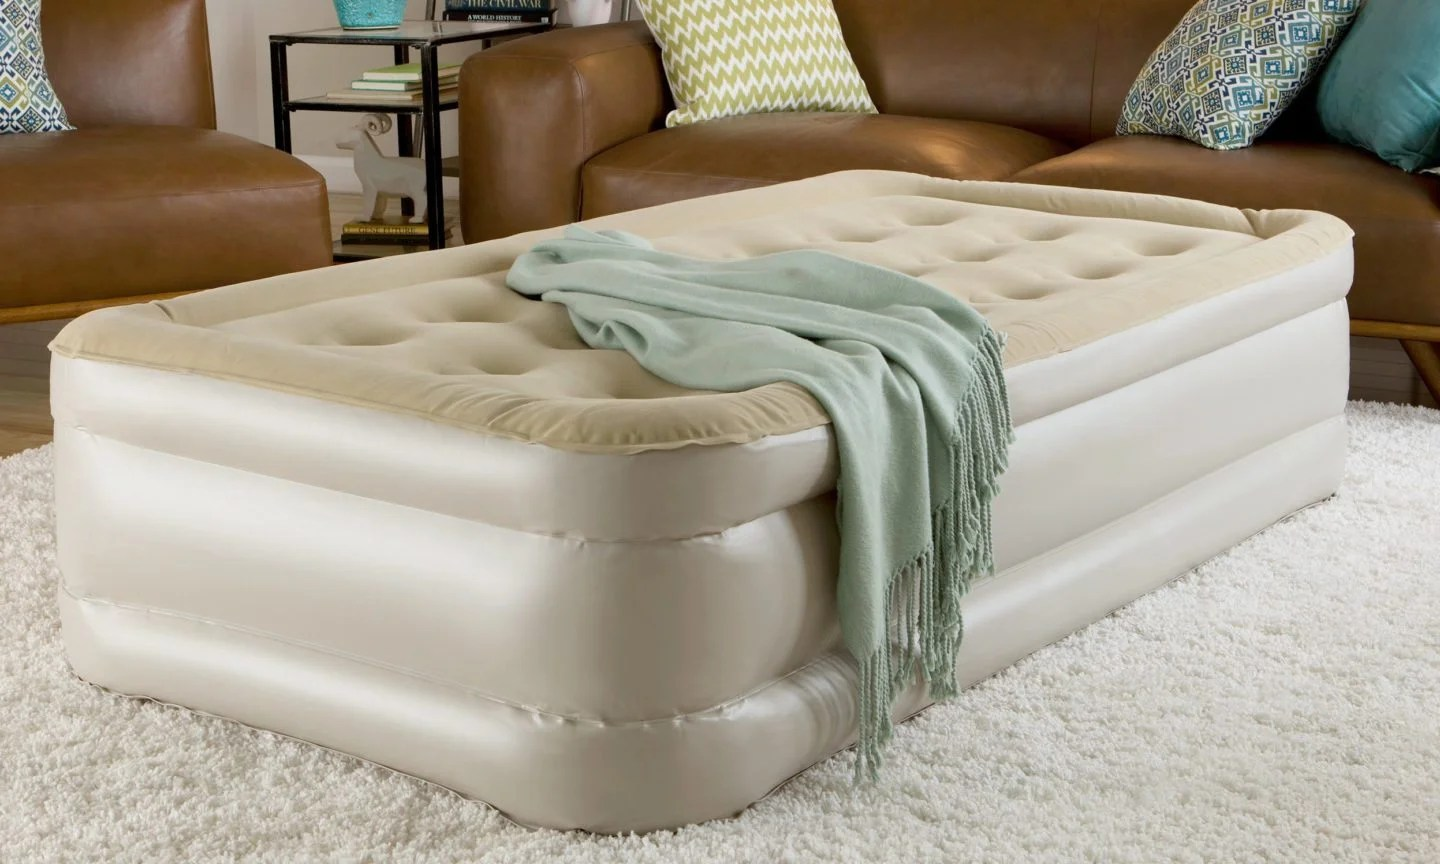 Comfy Air Mattress 5 Ways To Make Your Air Mattress More Comfortable Overstock